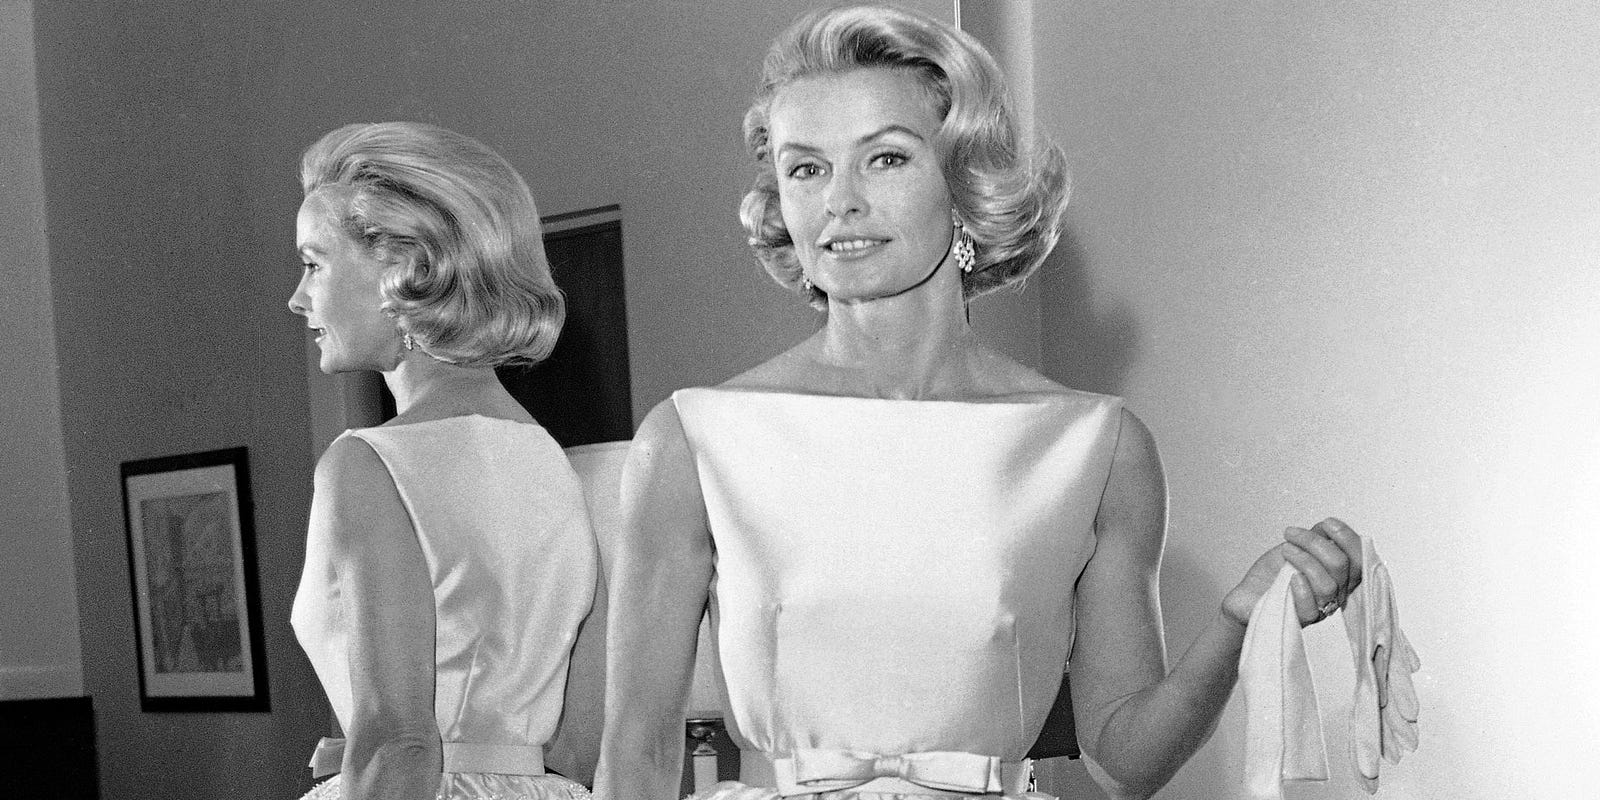 Ana Lago Hot actress dina merrill dies at 93